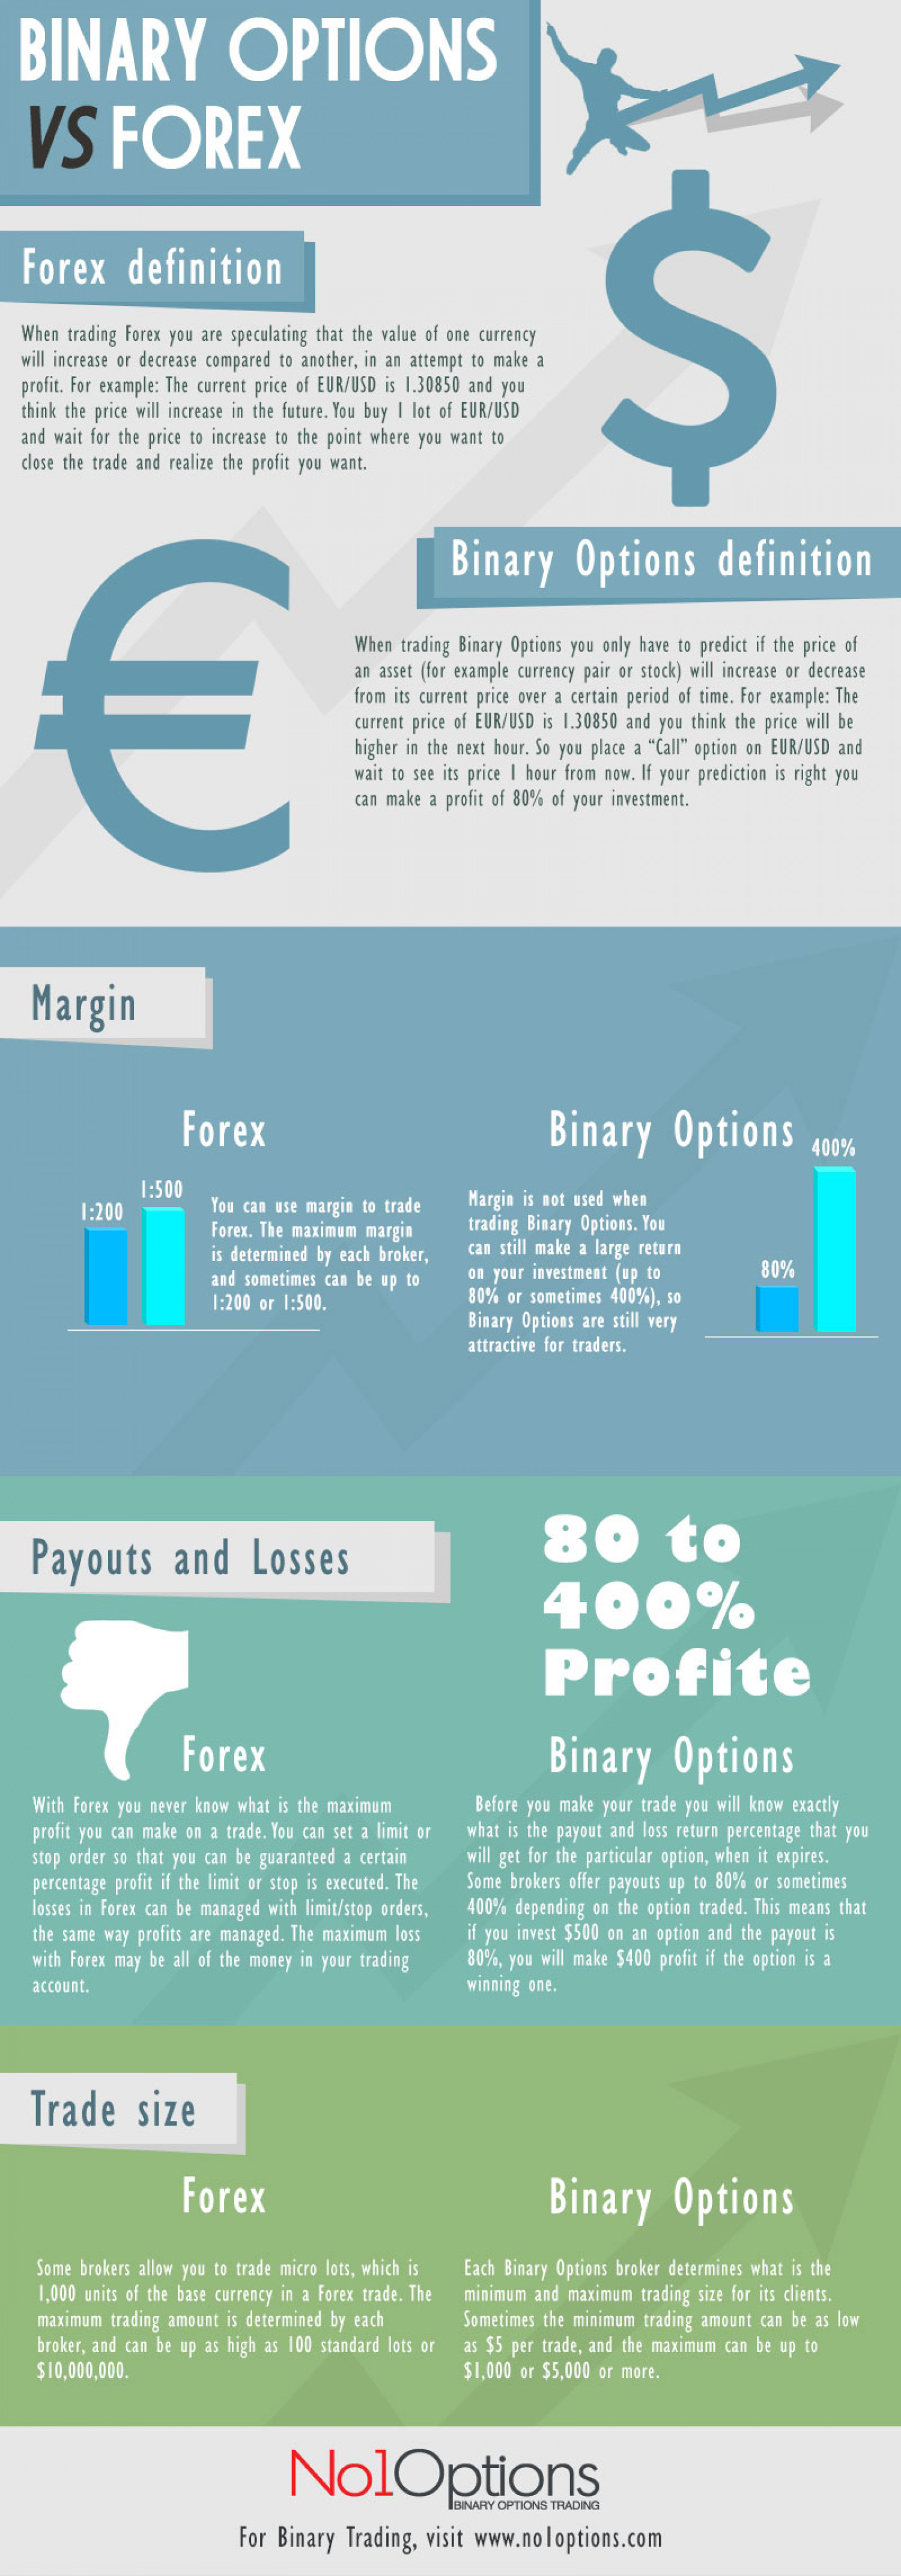 Is binary options the same as forex